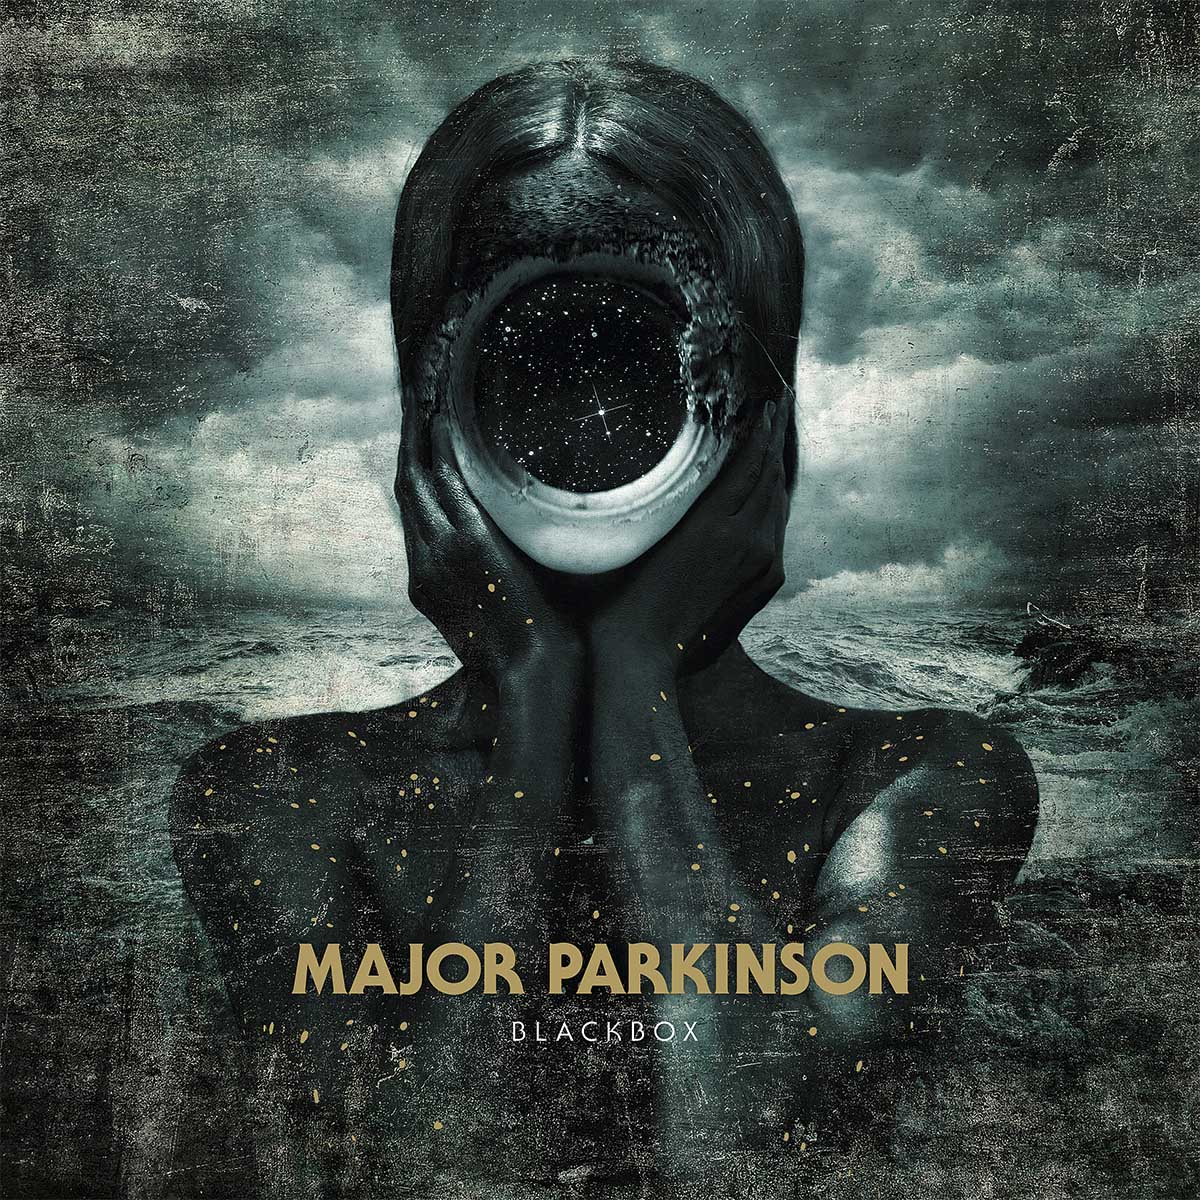 Major Parkinson – Blackbox